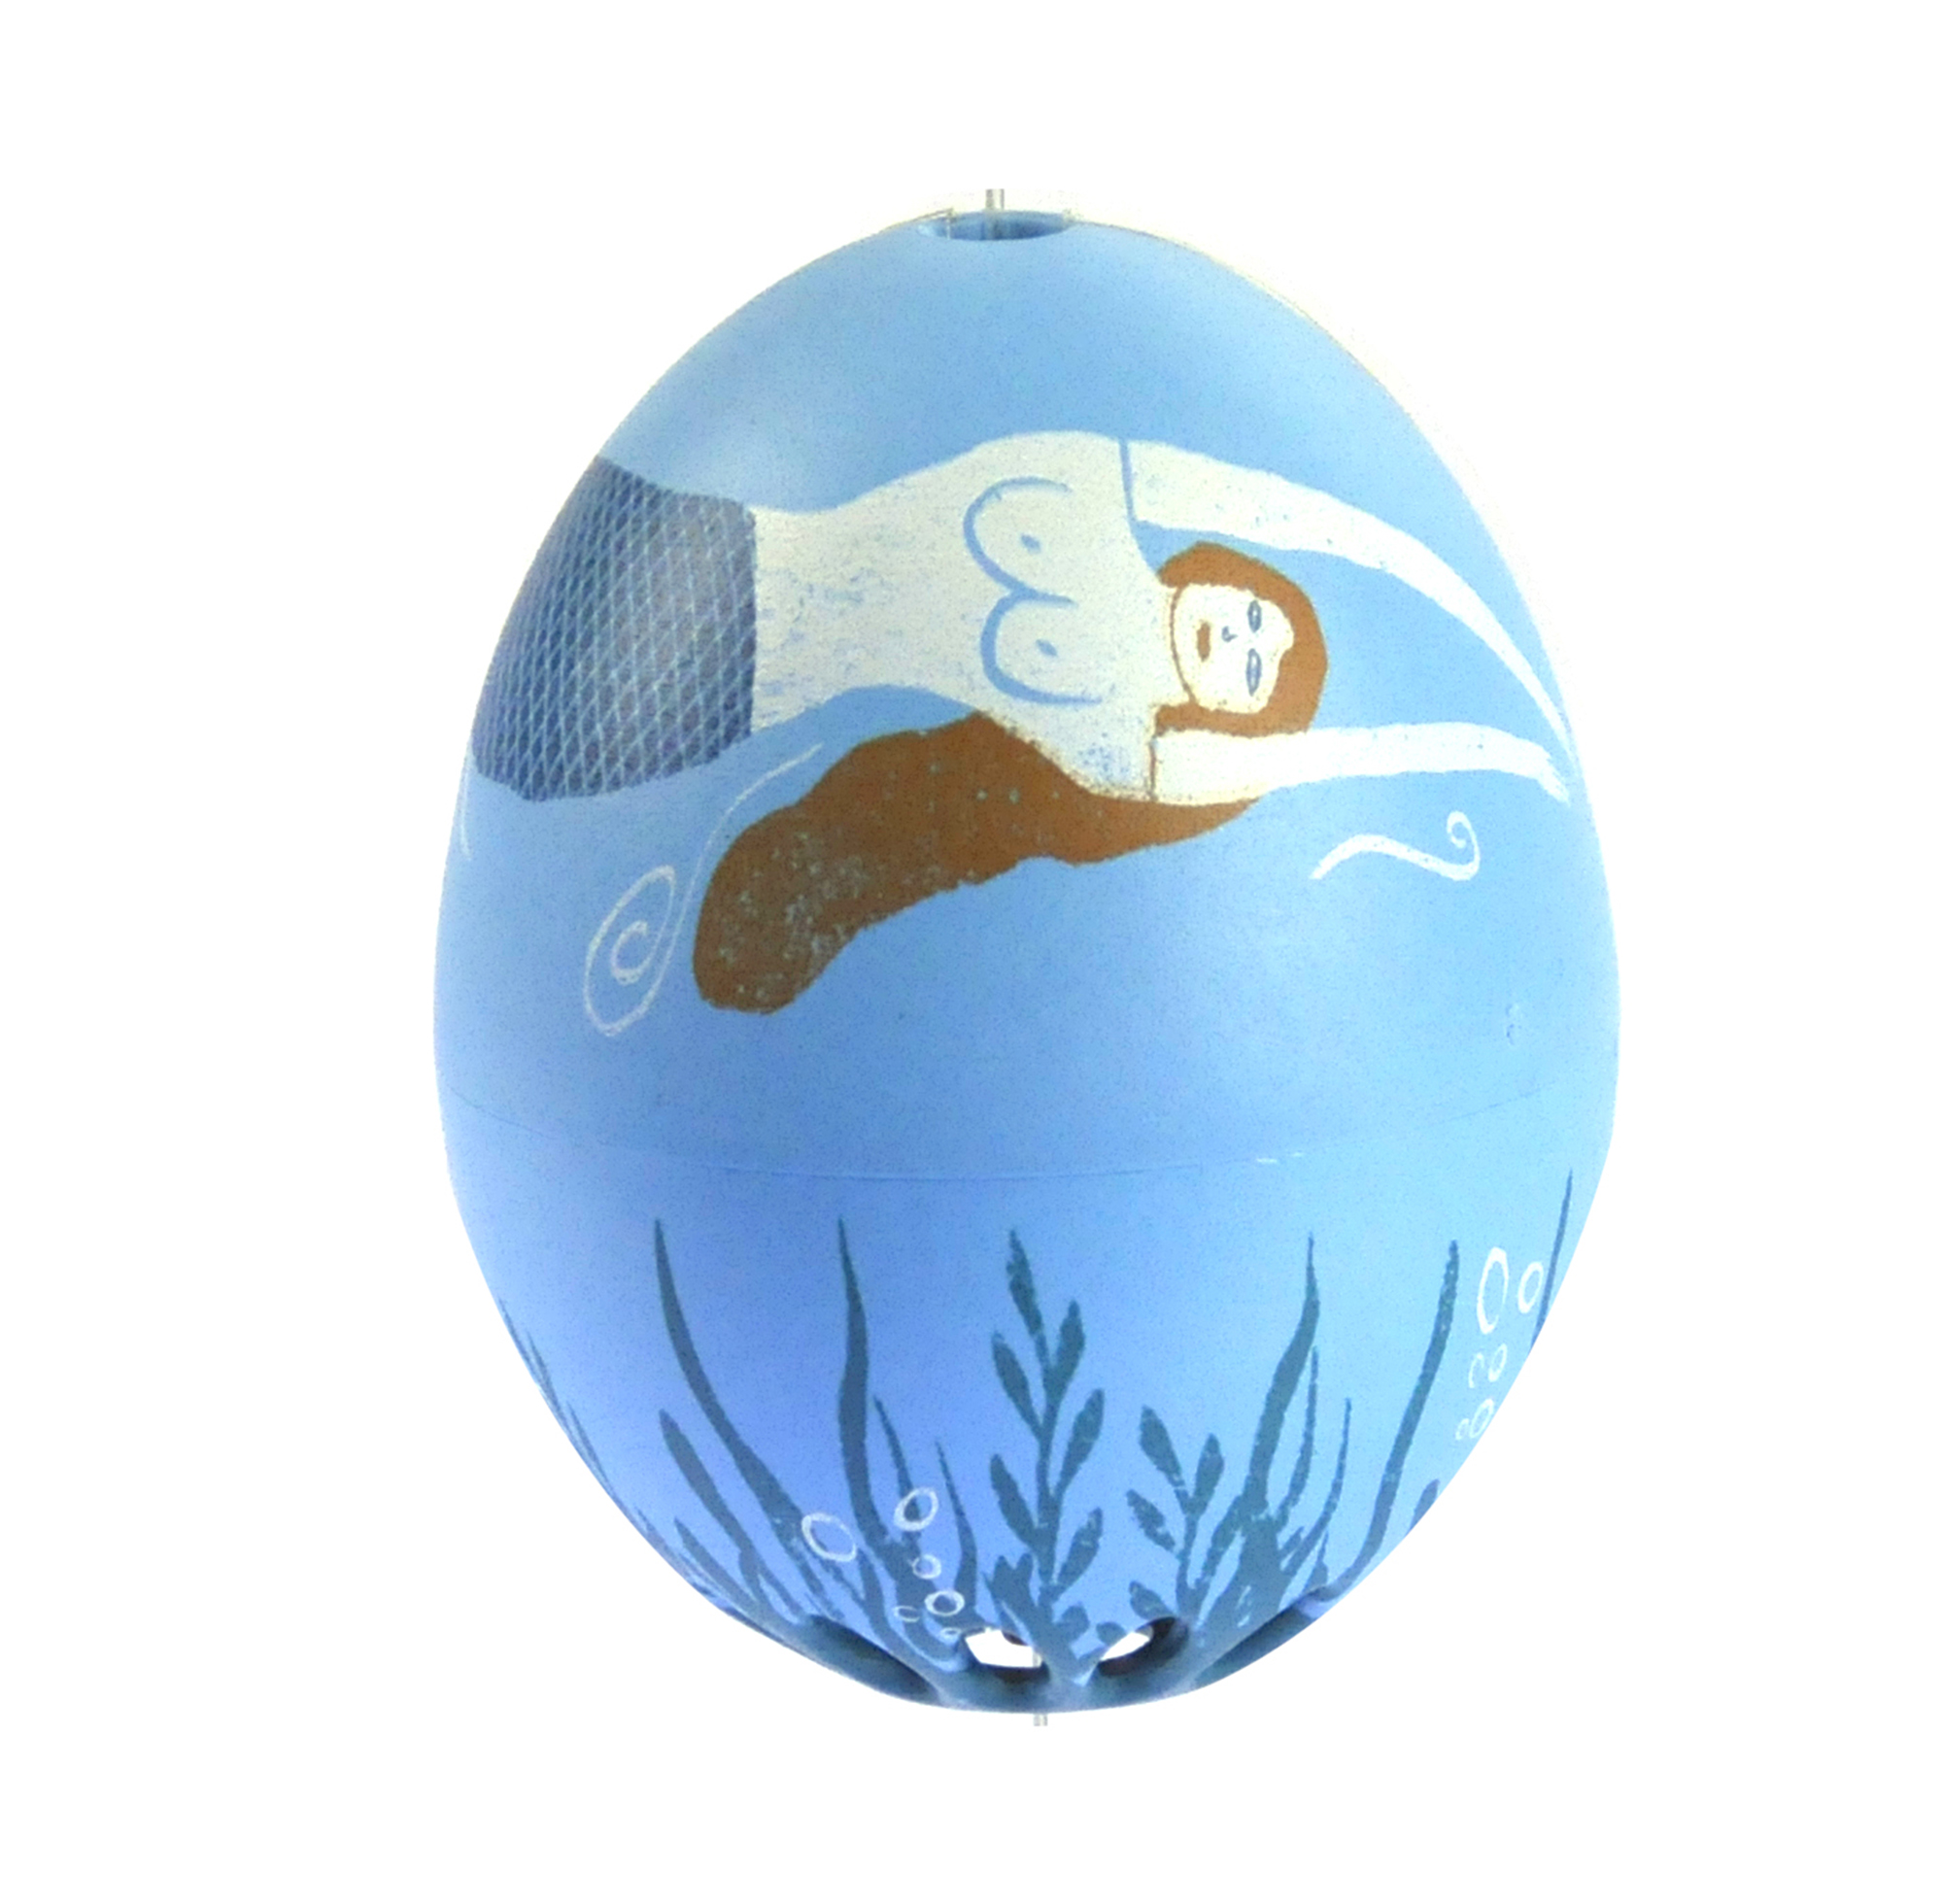 Sirene Beep Egg Timer - Piep Ei Edition No. 6 Mermaid | Pink Cat Shop